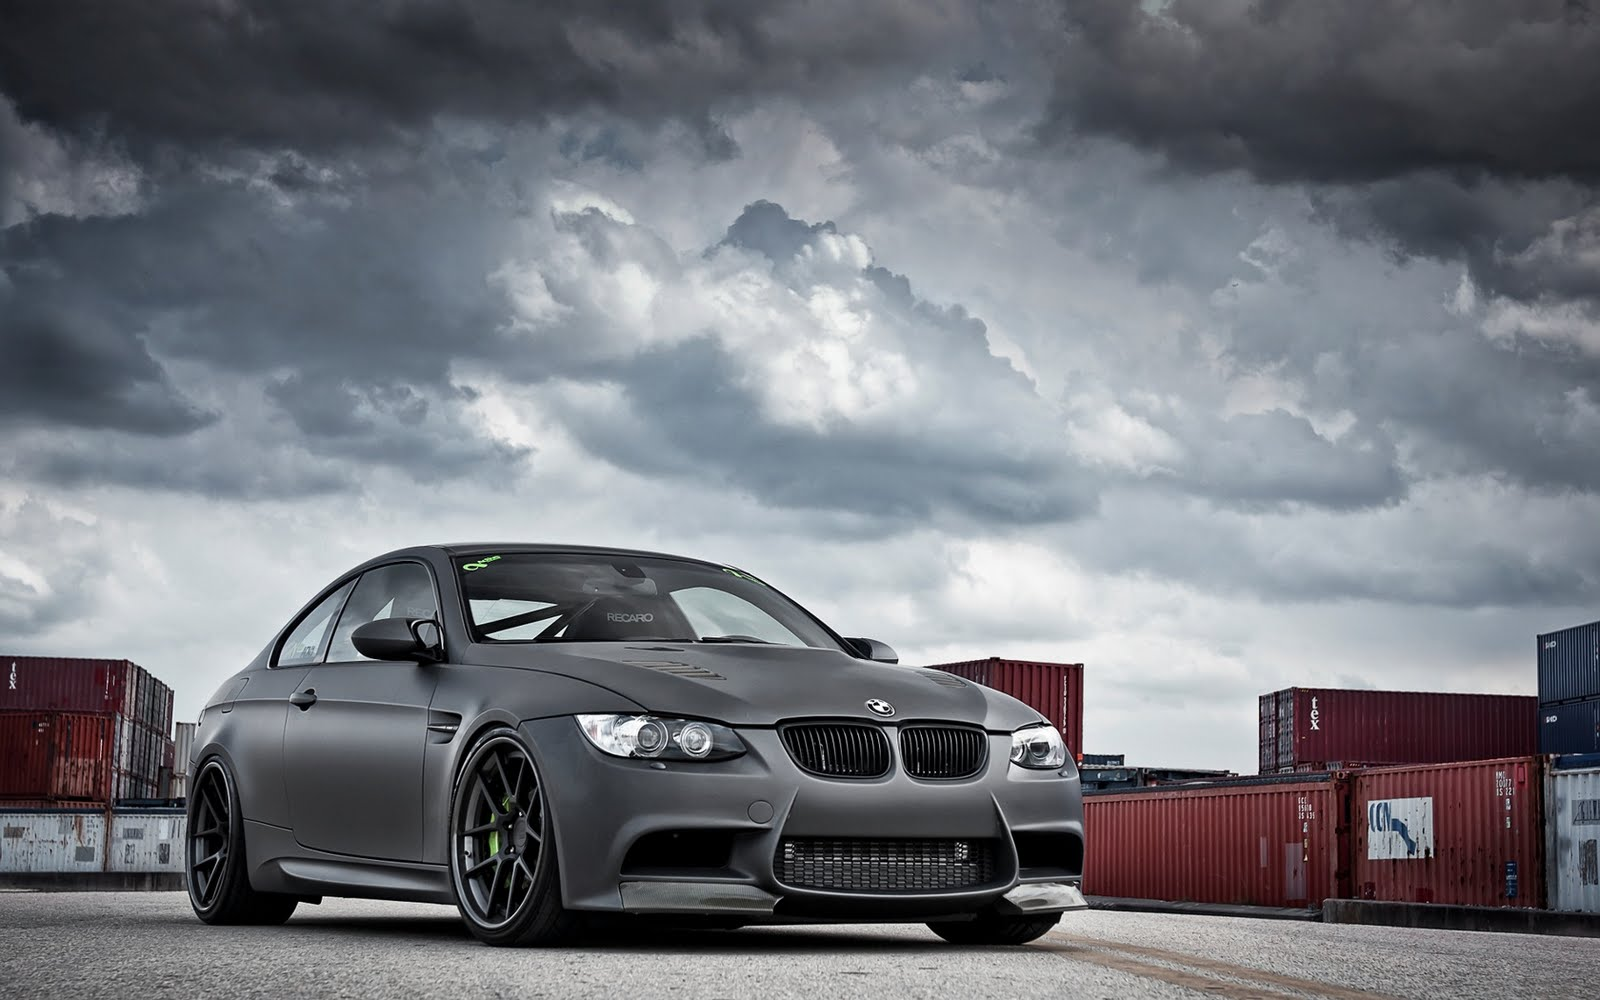 2005 Bmw M3 Hd Wallpapers Wallpapersafari